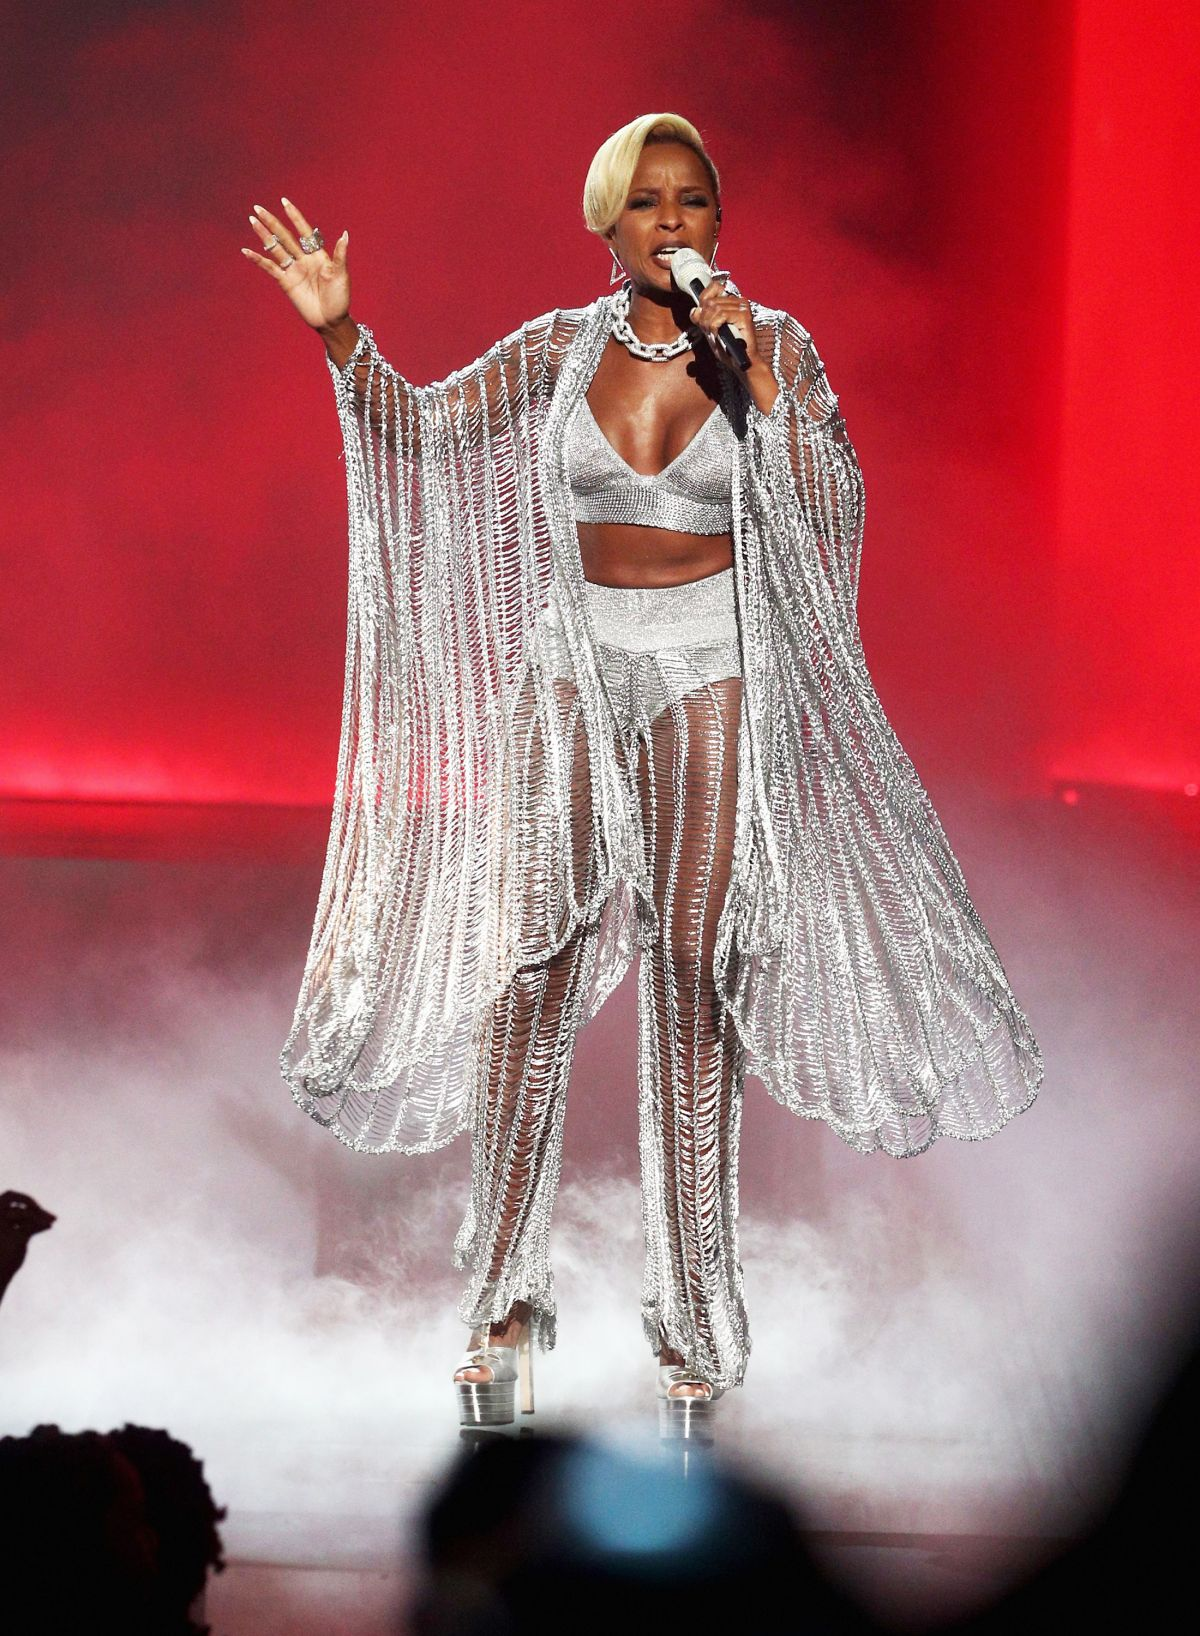 Mary J Blige shares everything during her concert!